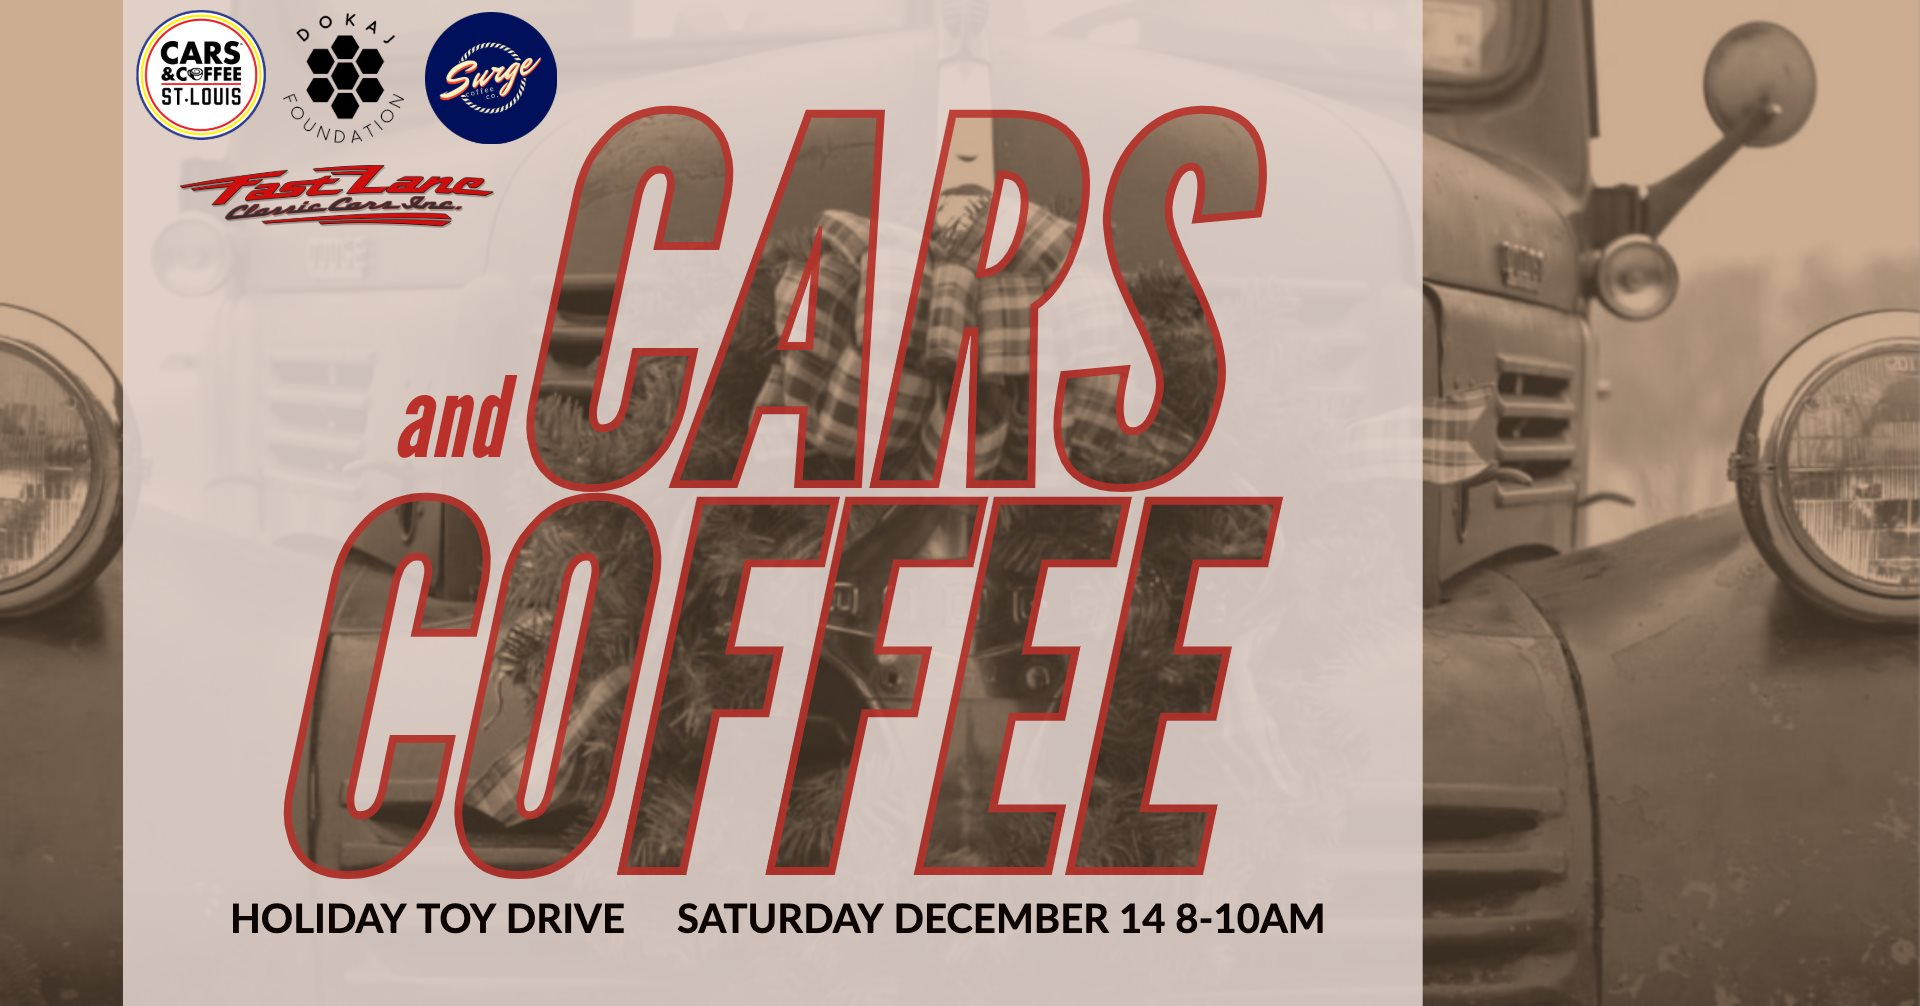 Cars and Coffee Holiday Toy Drive at Fast Lane Classic Cars (final 2019 event)